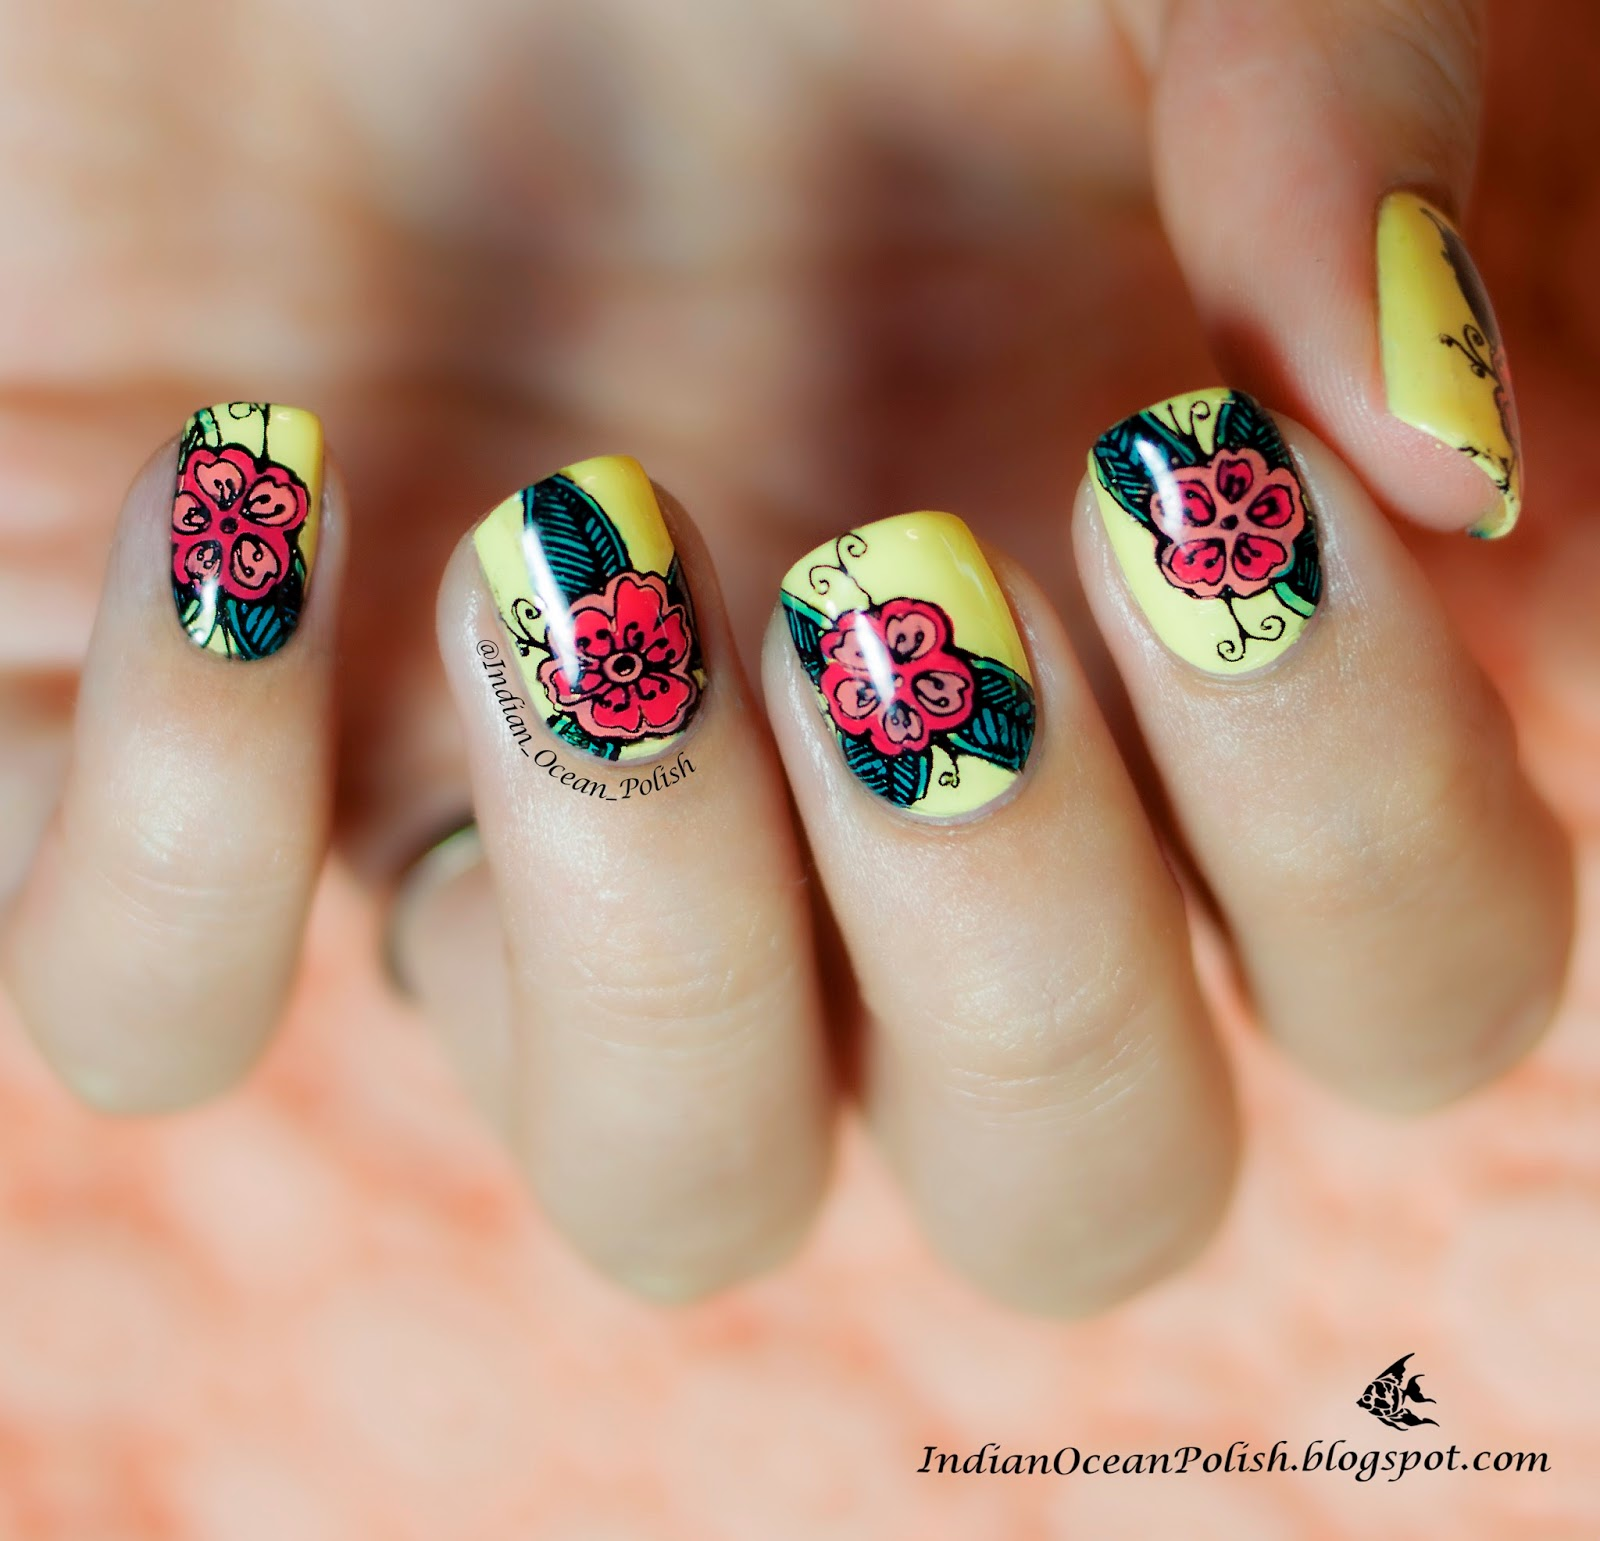 Indian Ocean Polish Home Made Floral Nail Decals With MoYou You - How to make nail decals at home